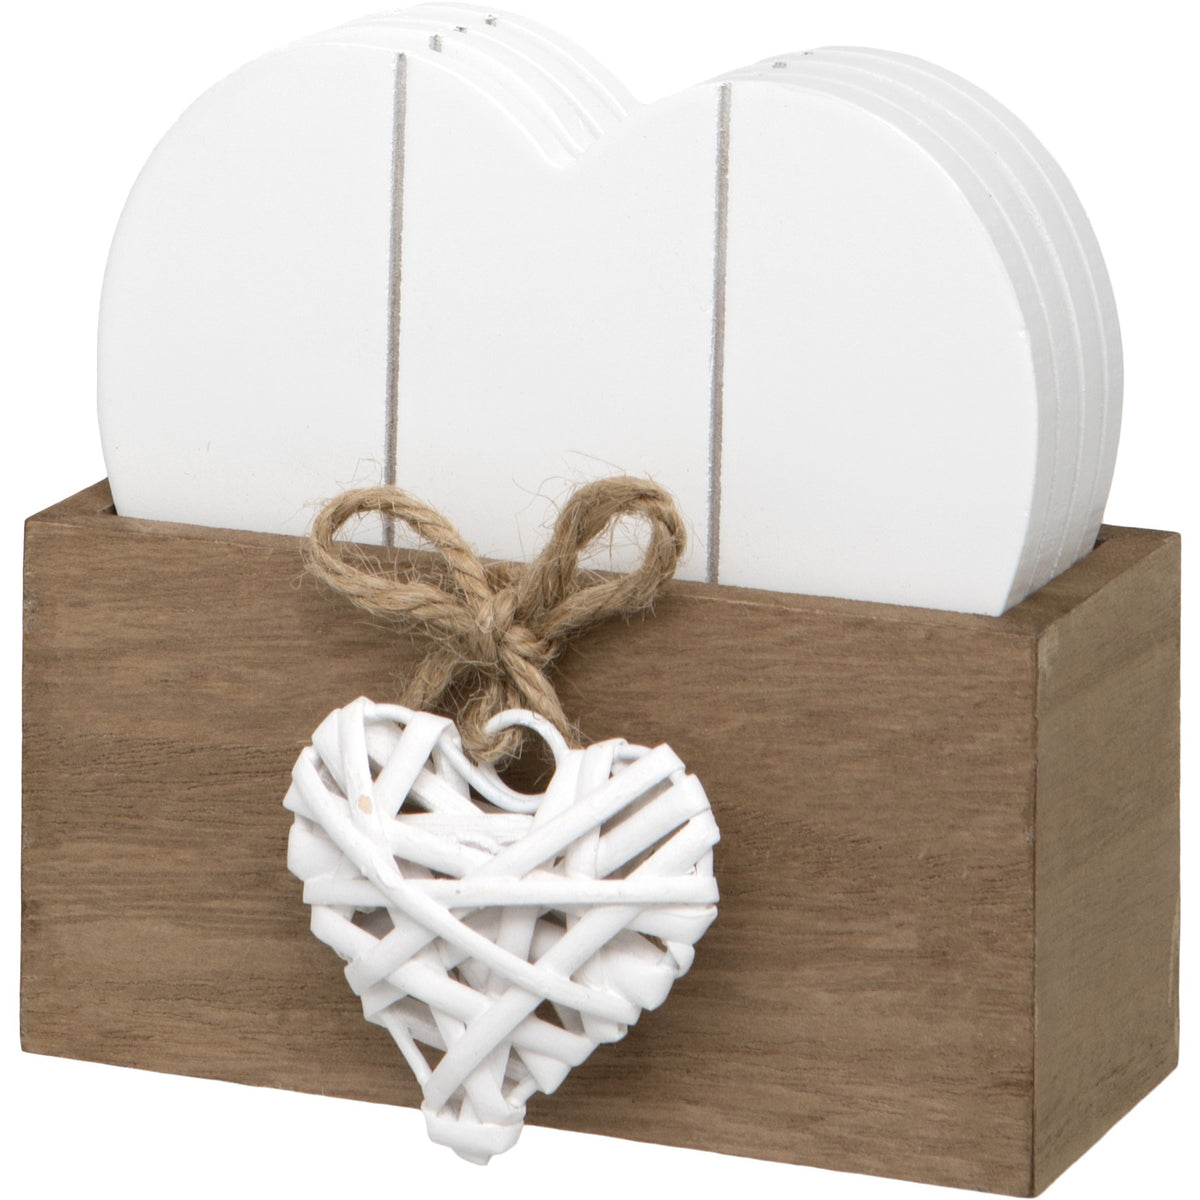 Woven Heart Design Set of 4 Wooden Heart Shaped Coasters with Stand